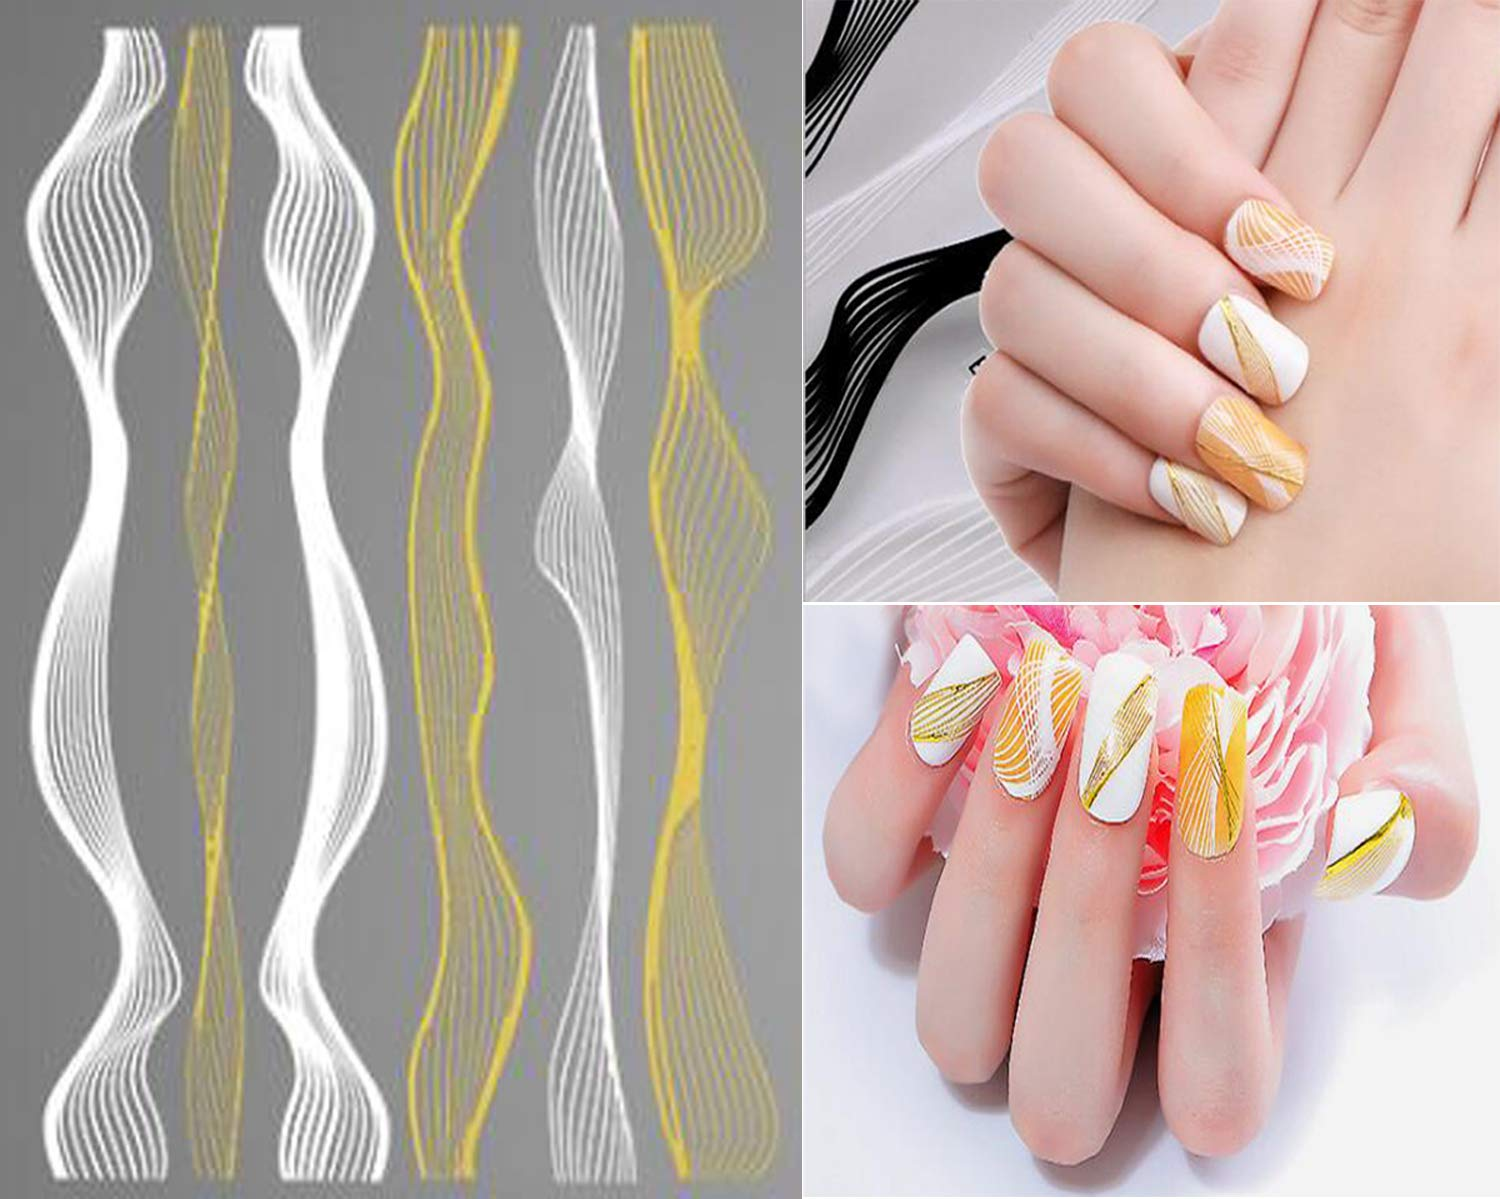 Banamic Gold Black White Nail Stickers Decals 3D Wave Strips Lines Foil  Nail Art Self Adhesive Stickers